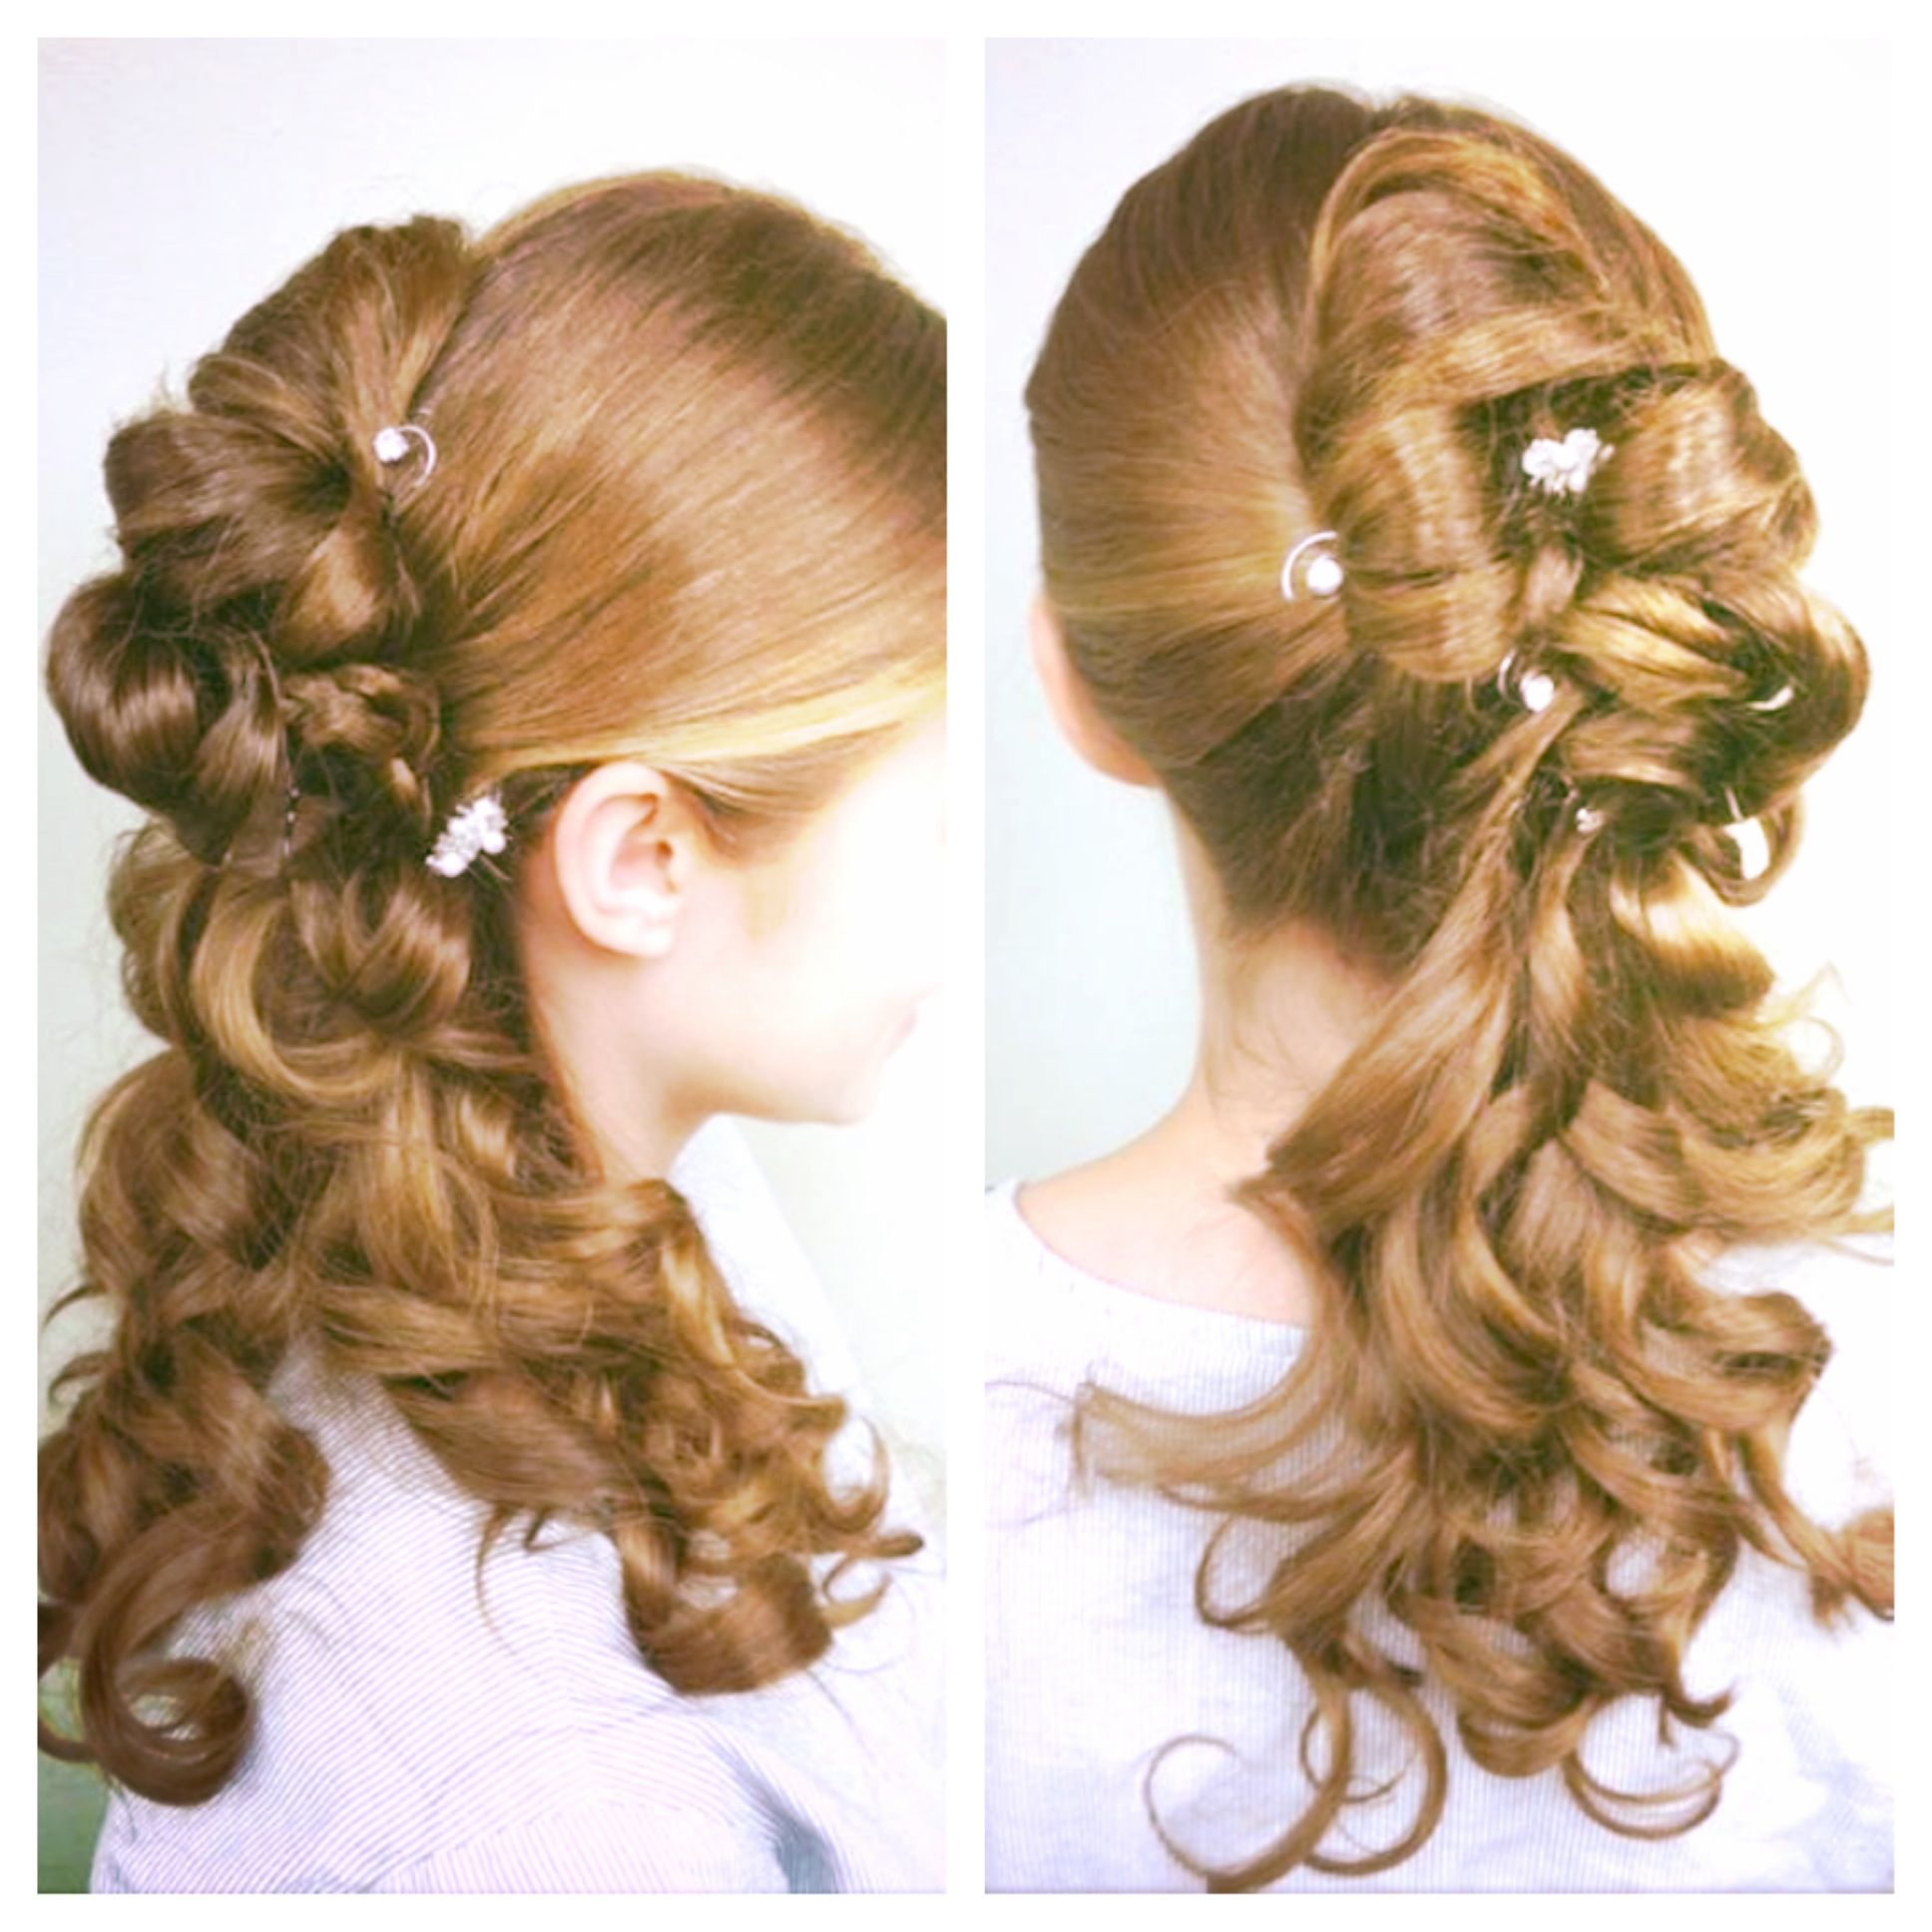 my hair for prom! it is a sideswept bun with jewels and